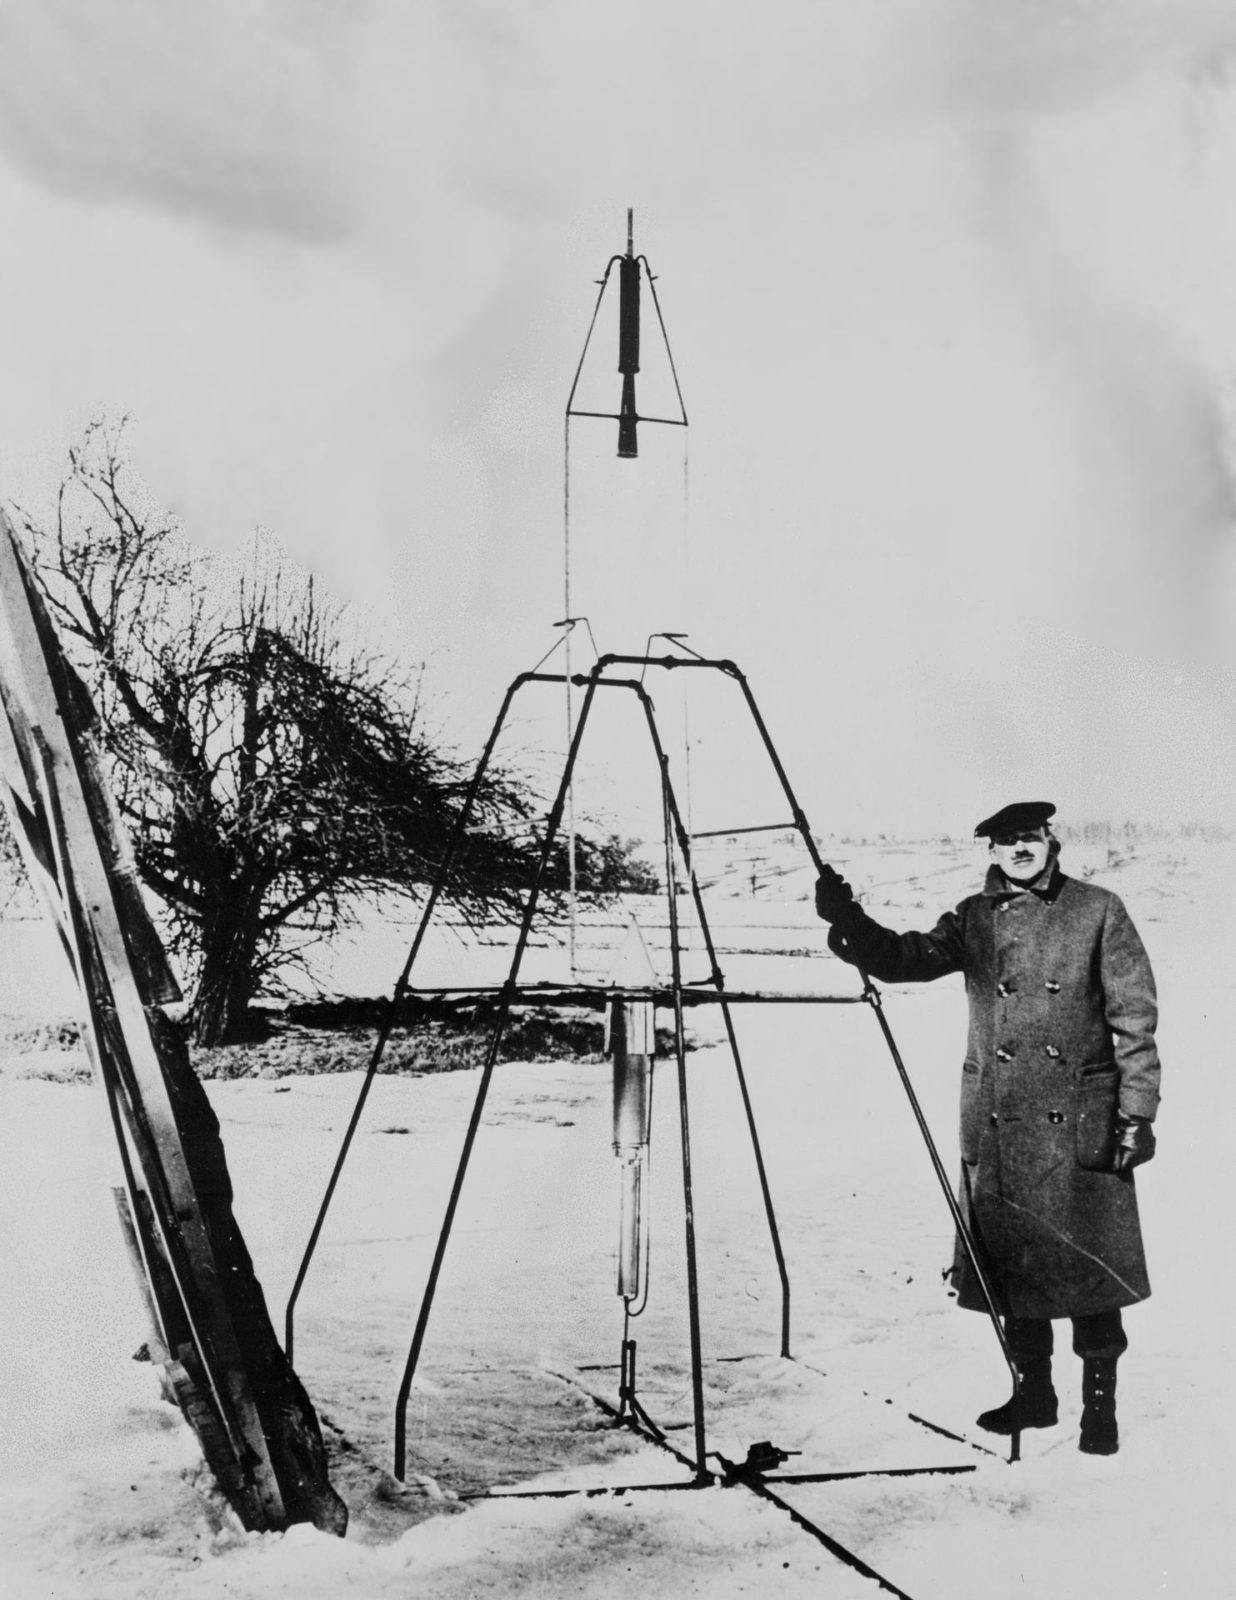 Early Rockets. Dr. Robert H. Goddard and liquid oxygen-gasoline rocket.